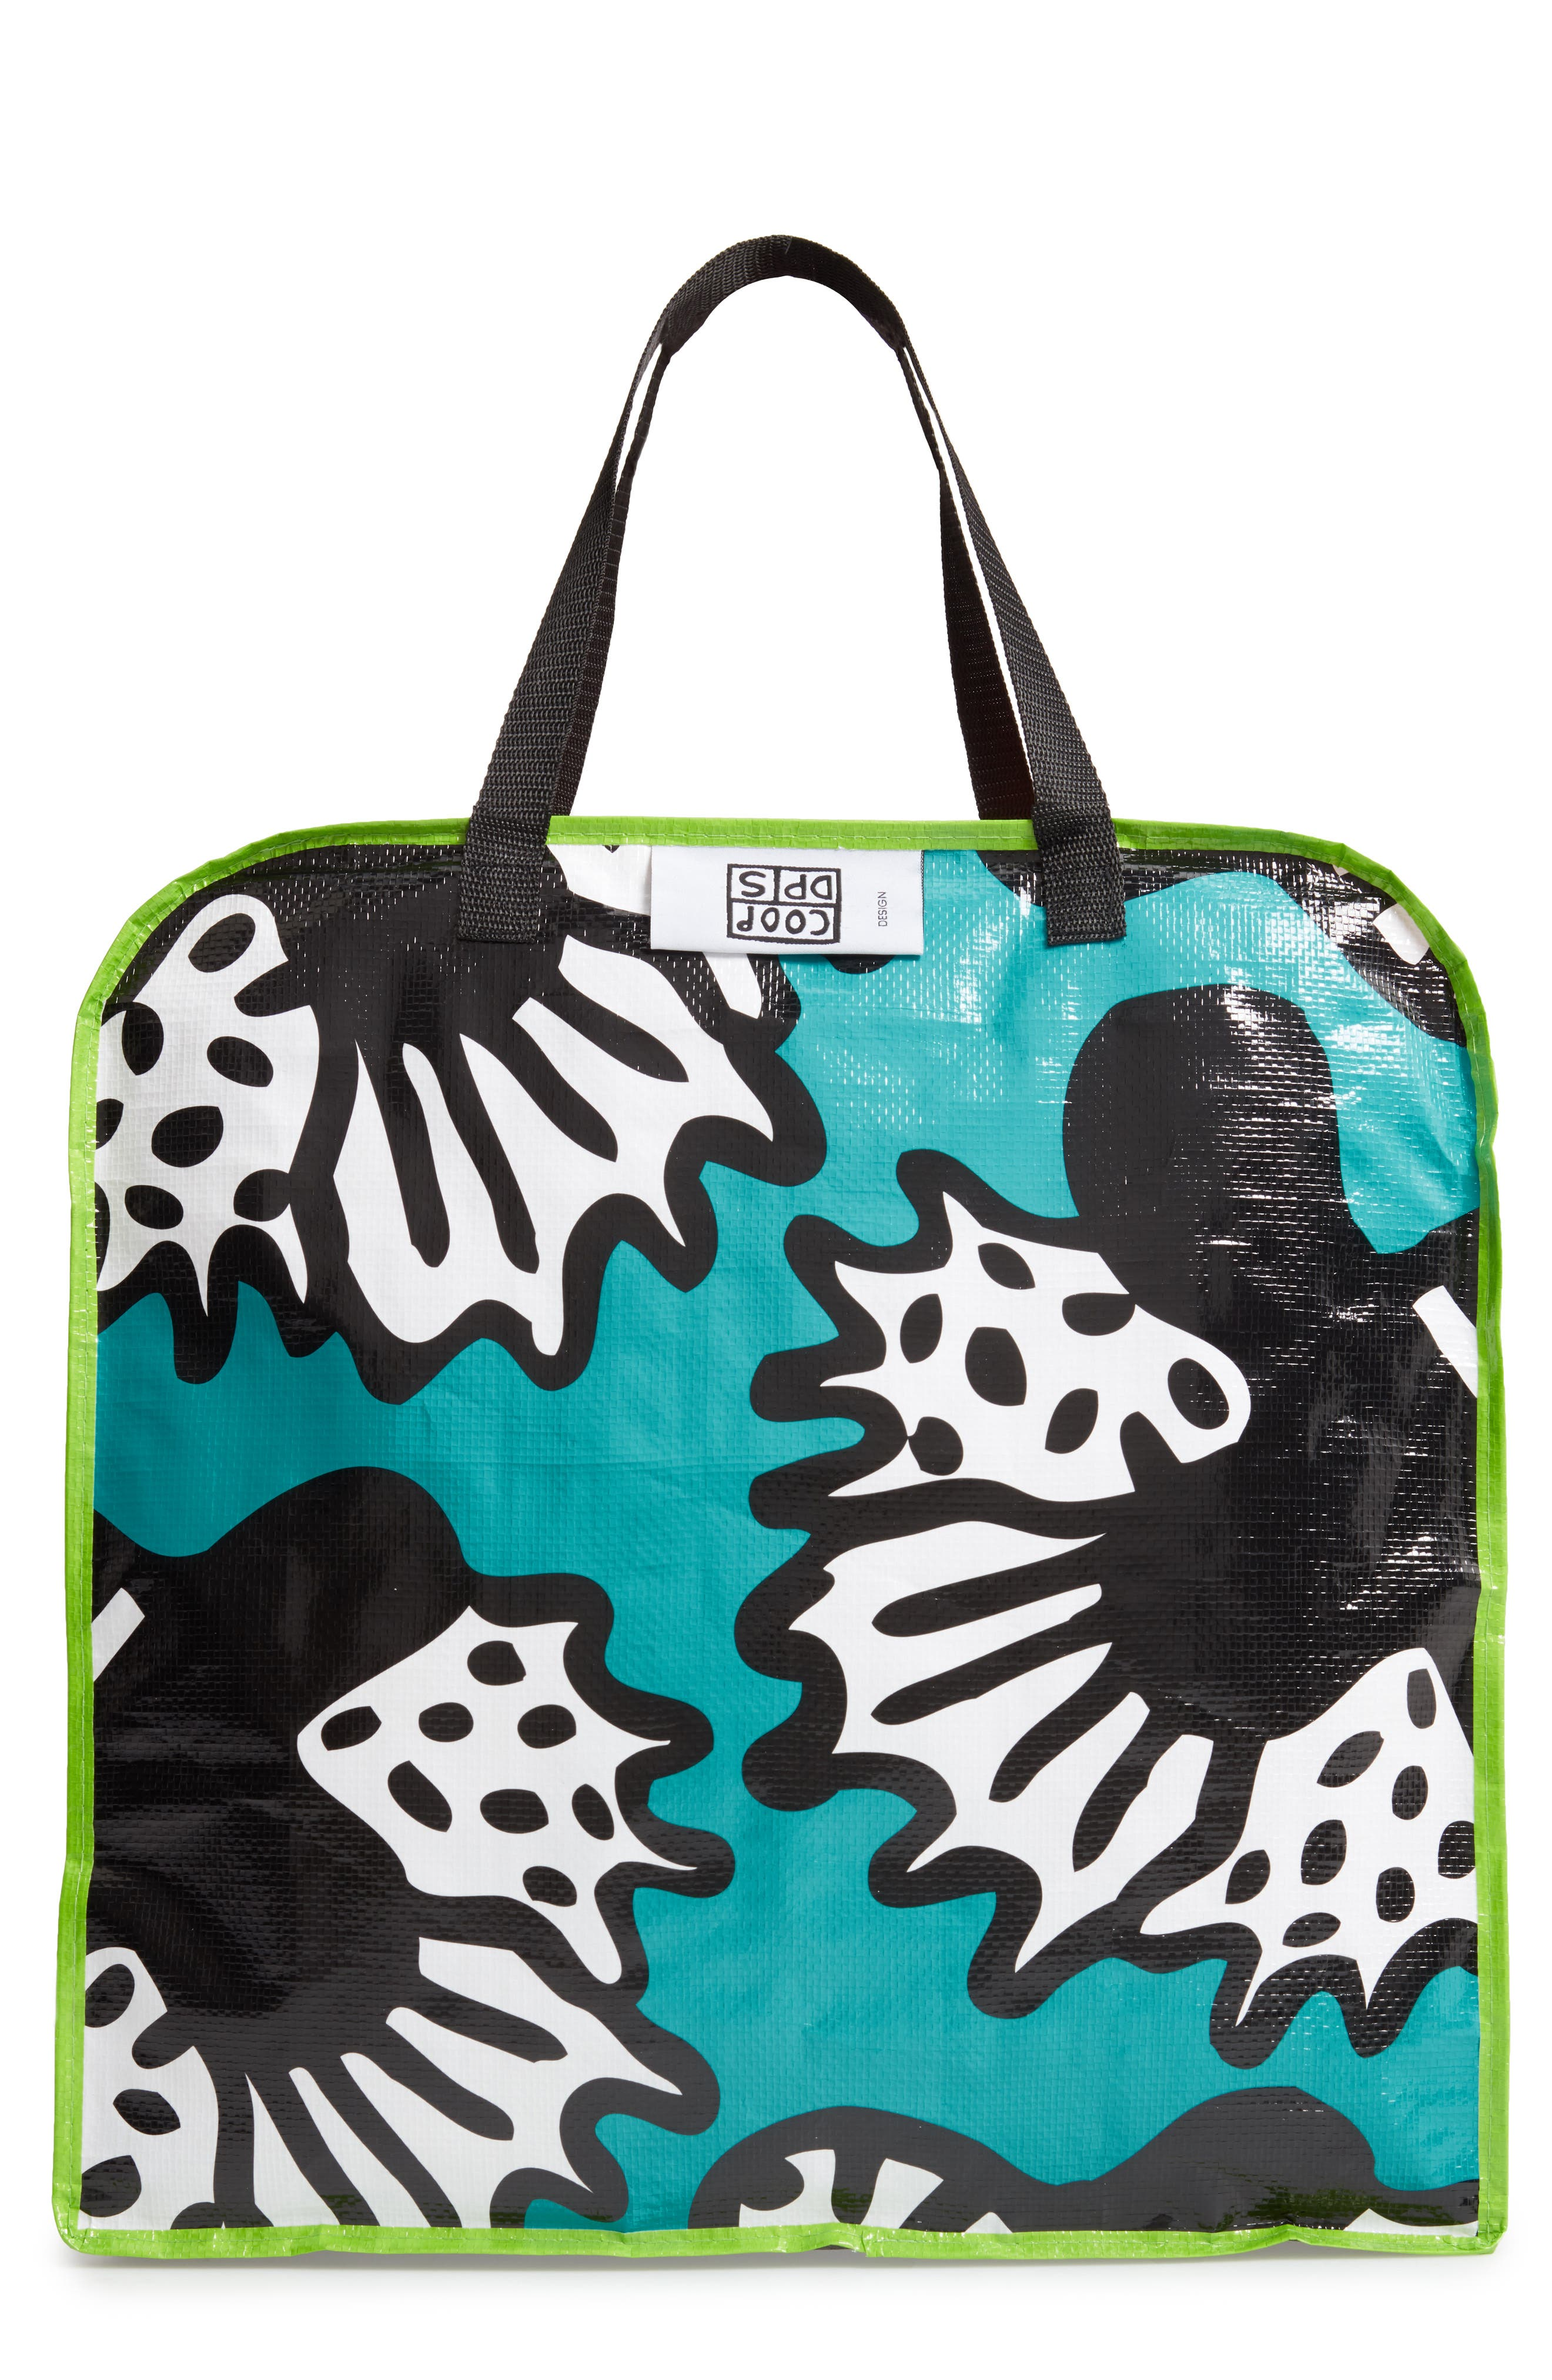 MEMPHIS Milano Butterfly Tote, Main, color, BLUE